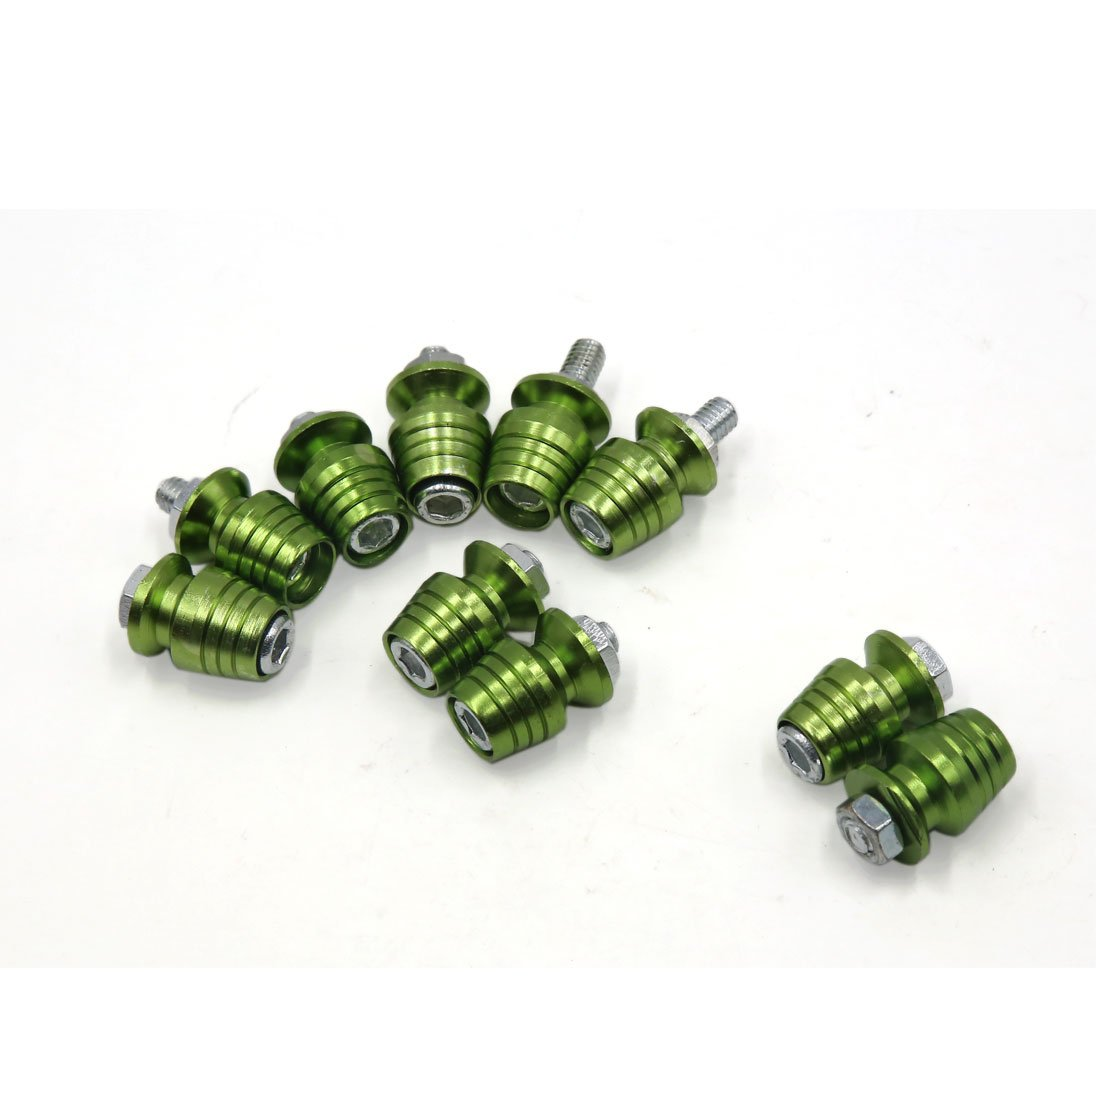 uxcell 10Pcs Universal Light Green Metal Motorcycle License Plate Frame Bolt Screw